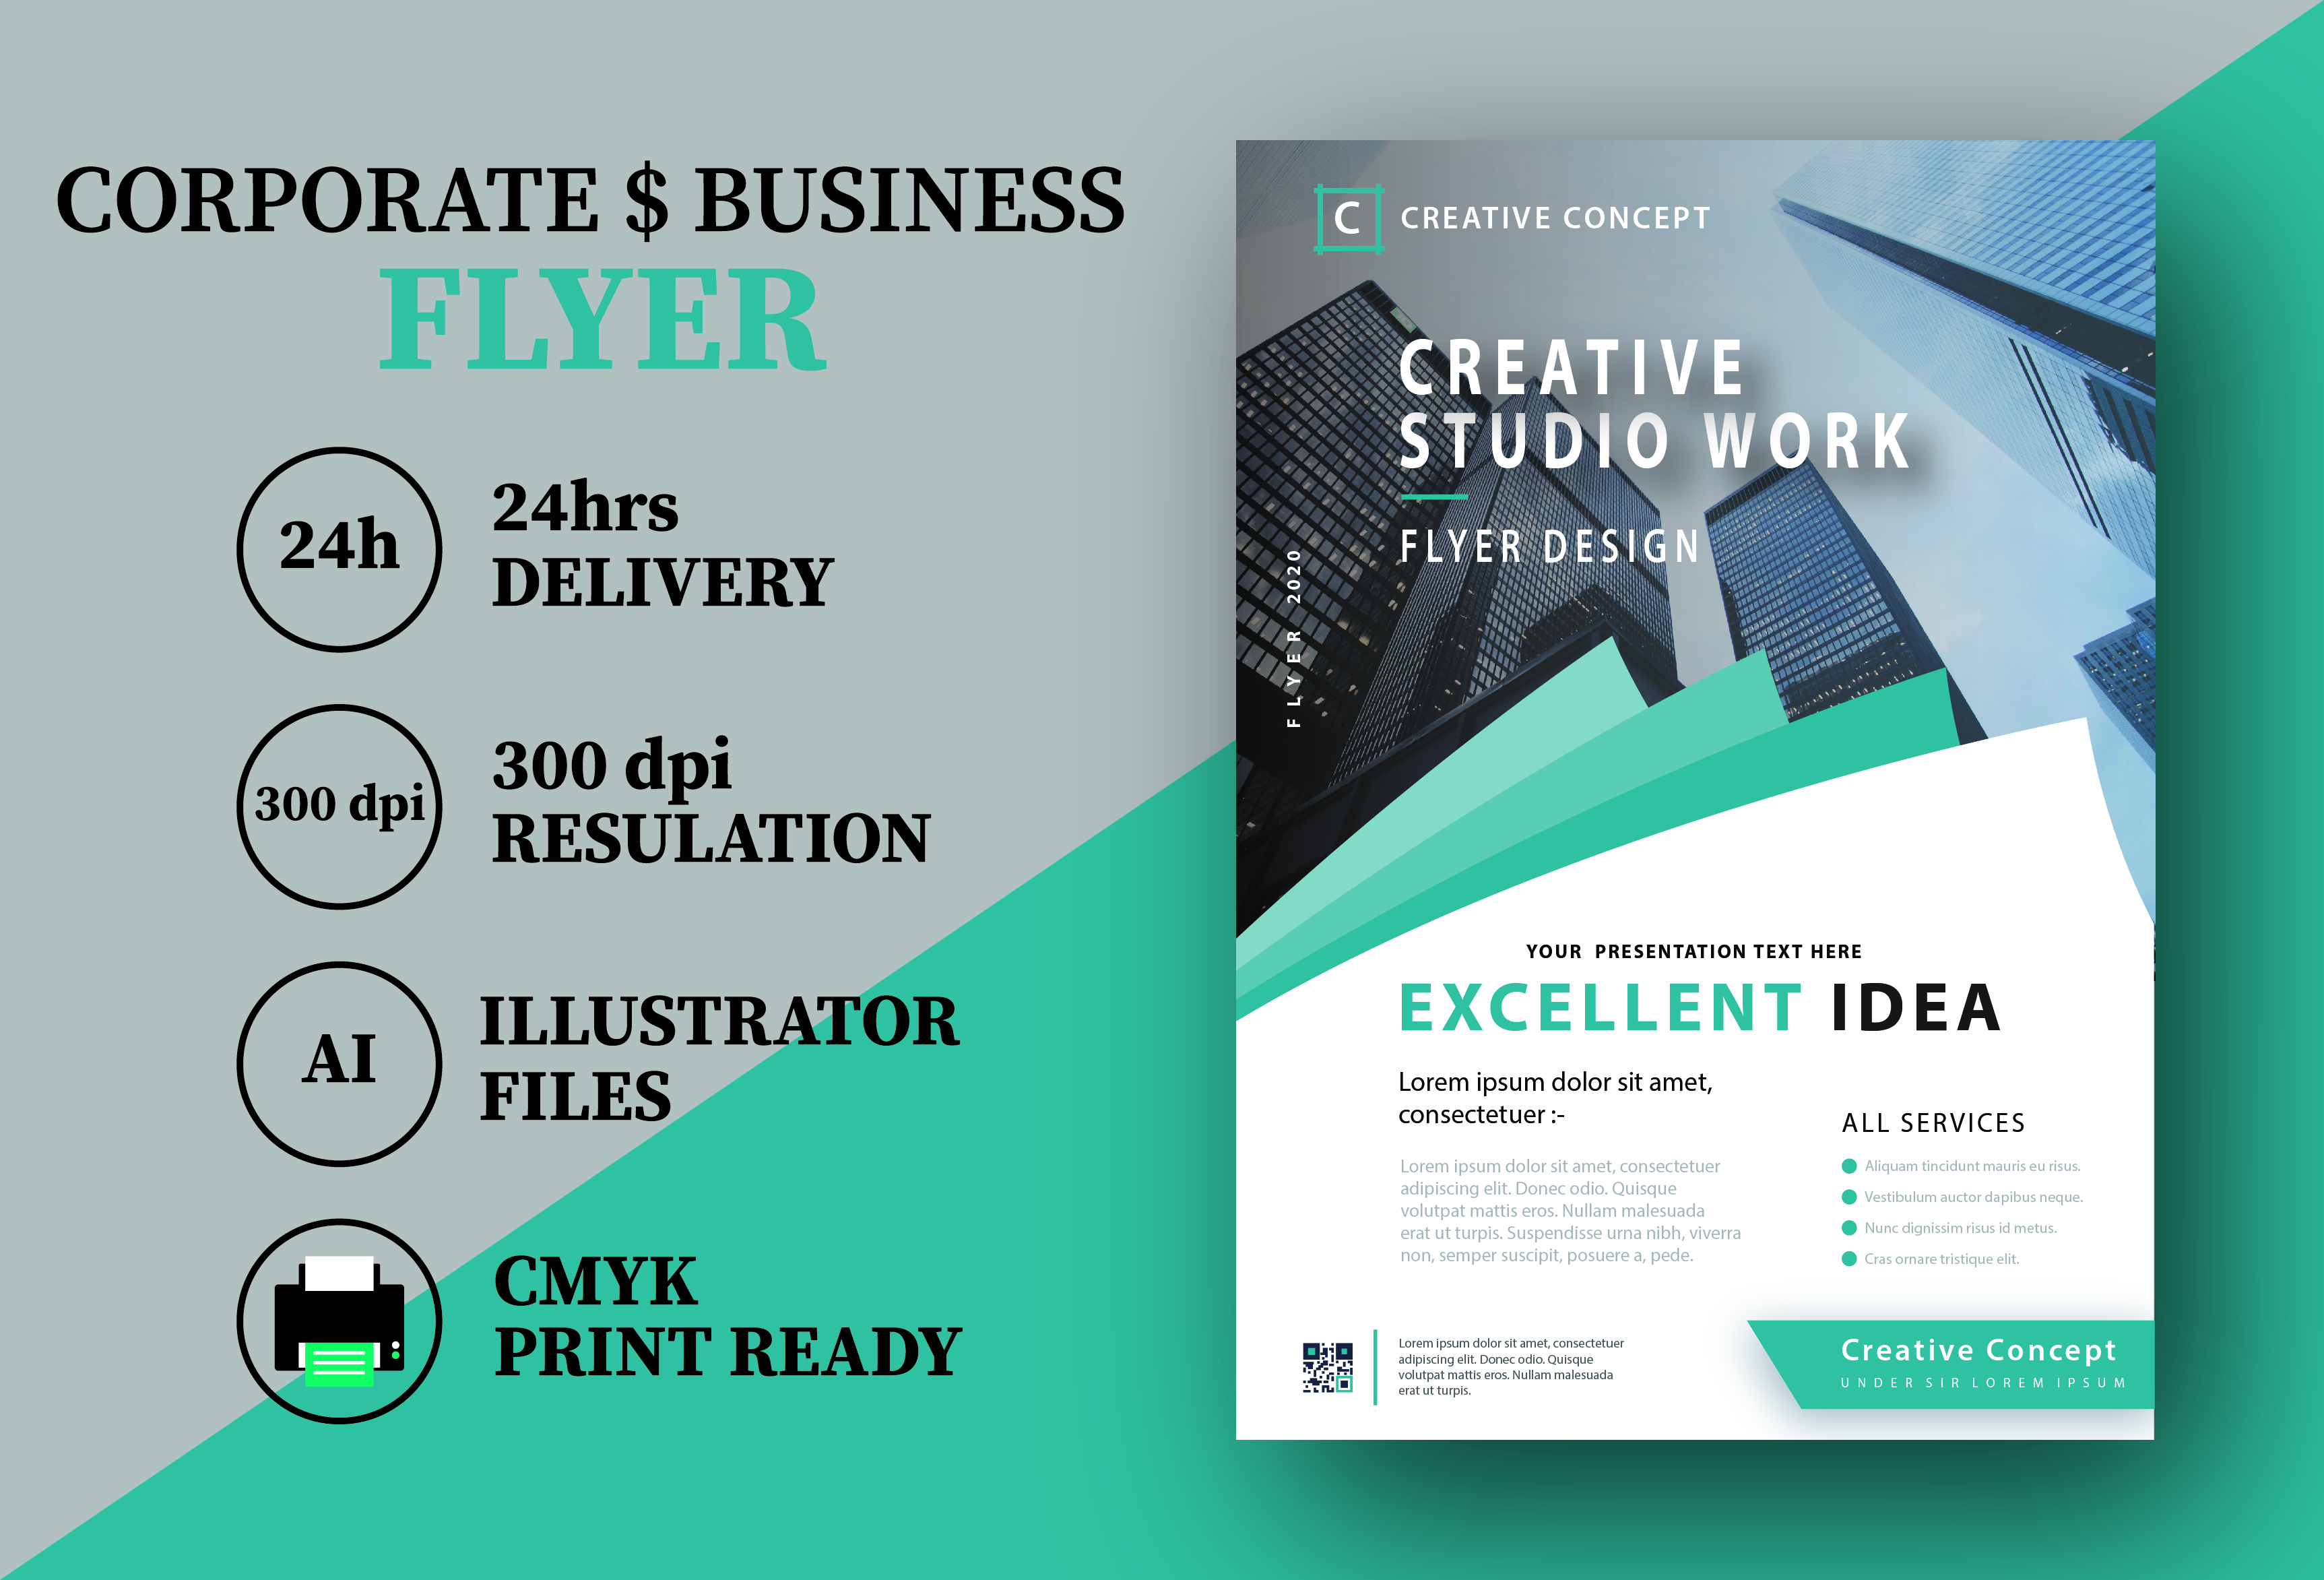 I will design your corporate and business flyer